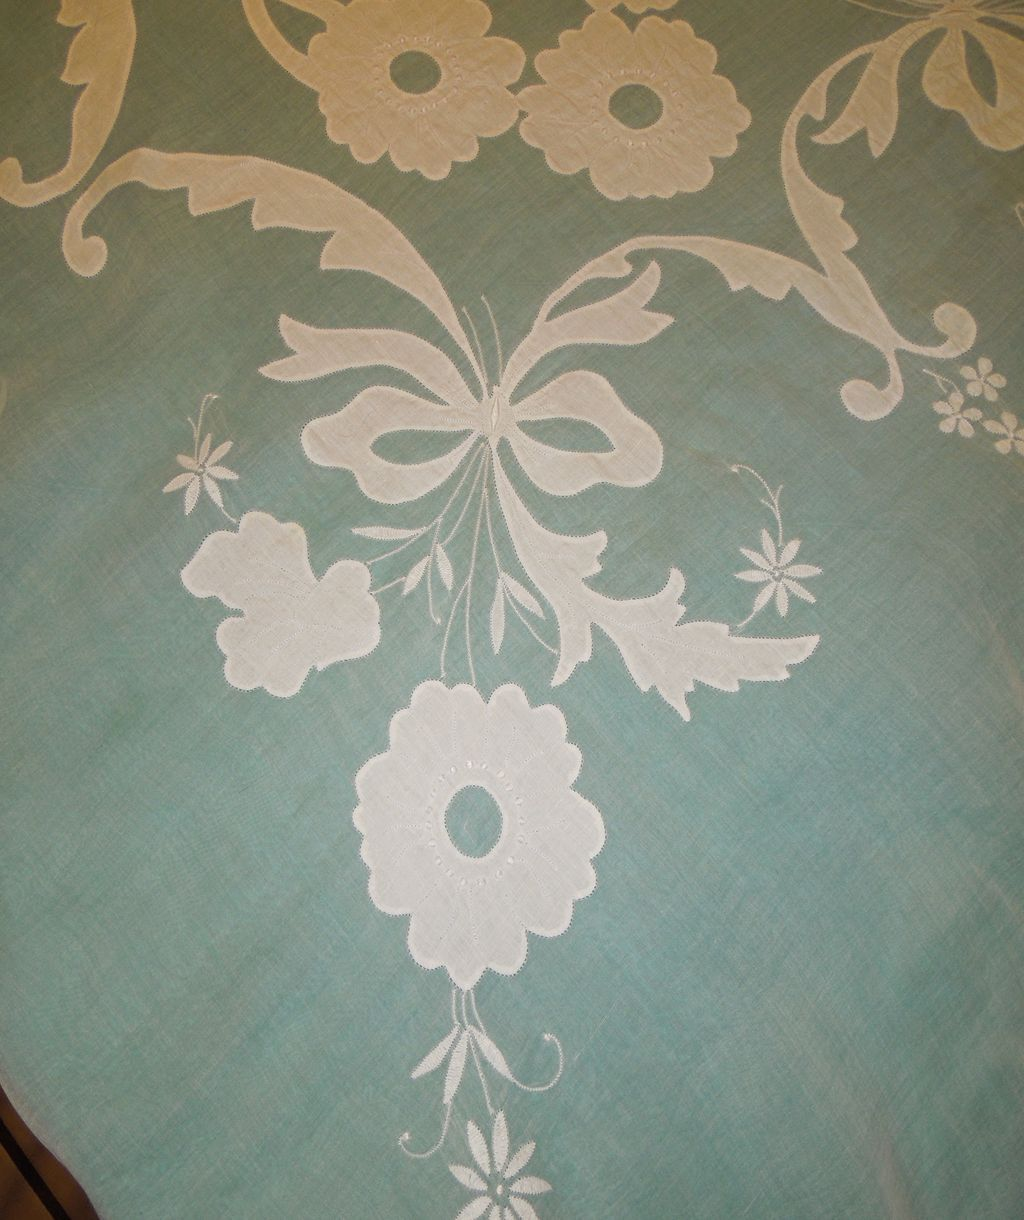 Applique designs for tablecloth - Roll Over Large Image To Magnify Click Large Image To Zoom